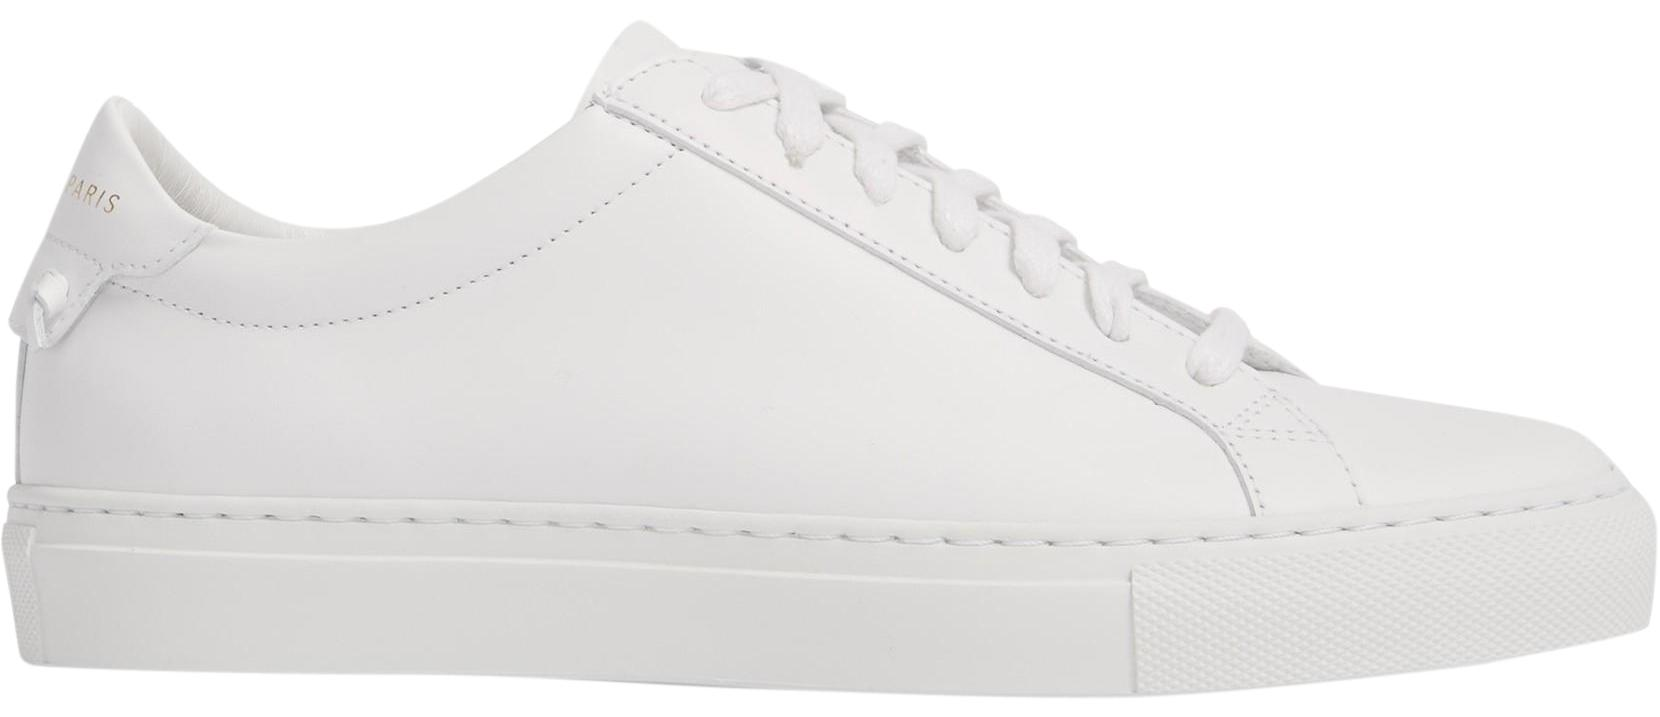 Givenchy White Low Top Sneaker Sneakers Size EU 36 (Approx. US 6) Regular (M, B)